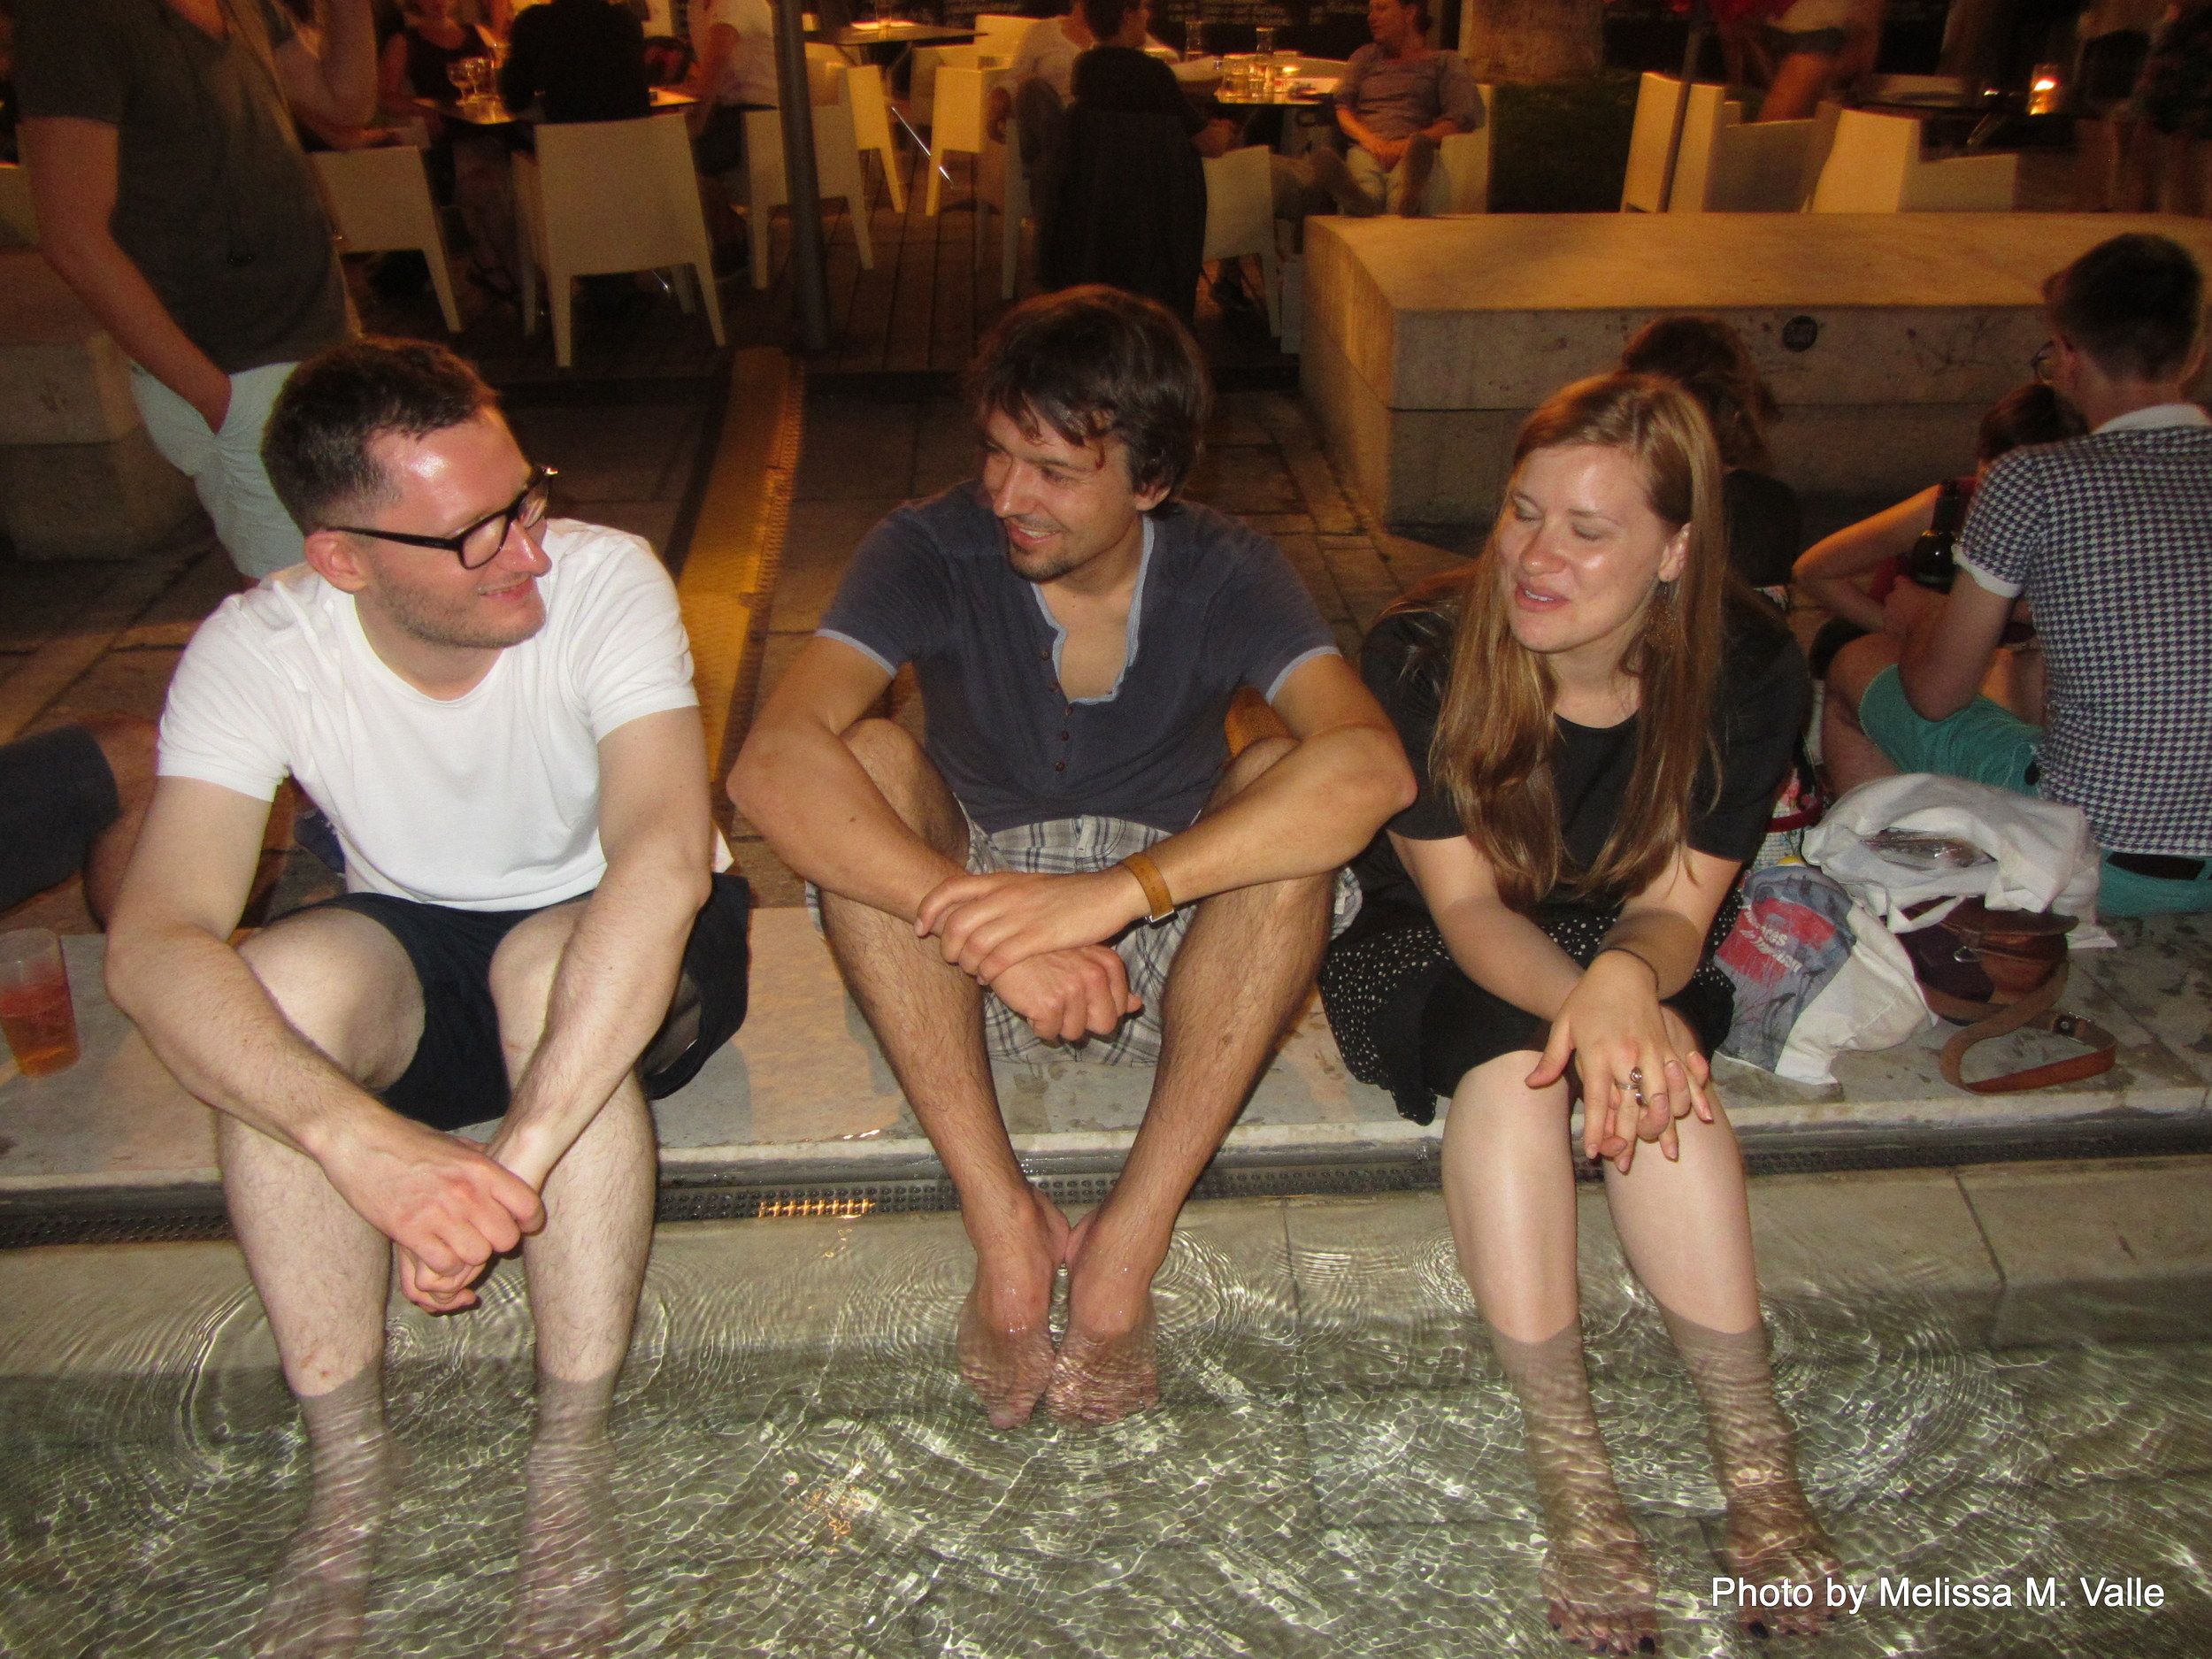 7.7.14 Vienna, Austria-wining it up in Museum Quartier after Amin lecture (16) Sebastian, Felix and Sam.JPG